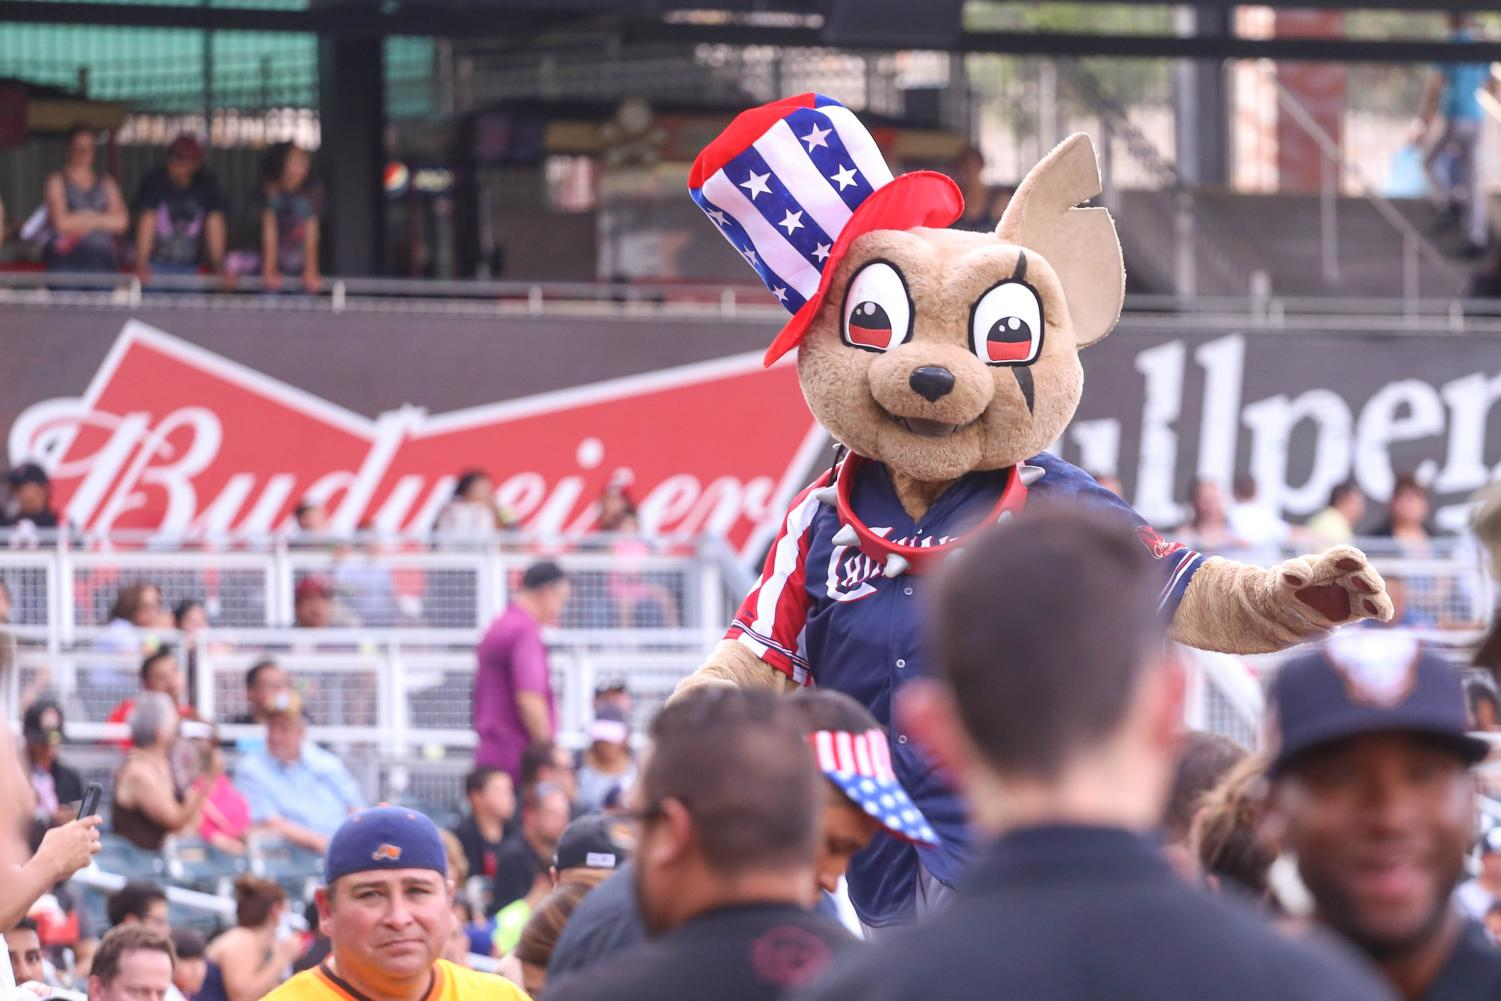 Chico greets the fans before the series finally in his 4th of July attire.